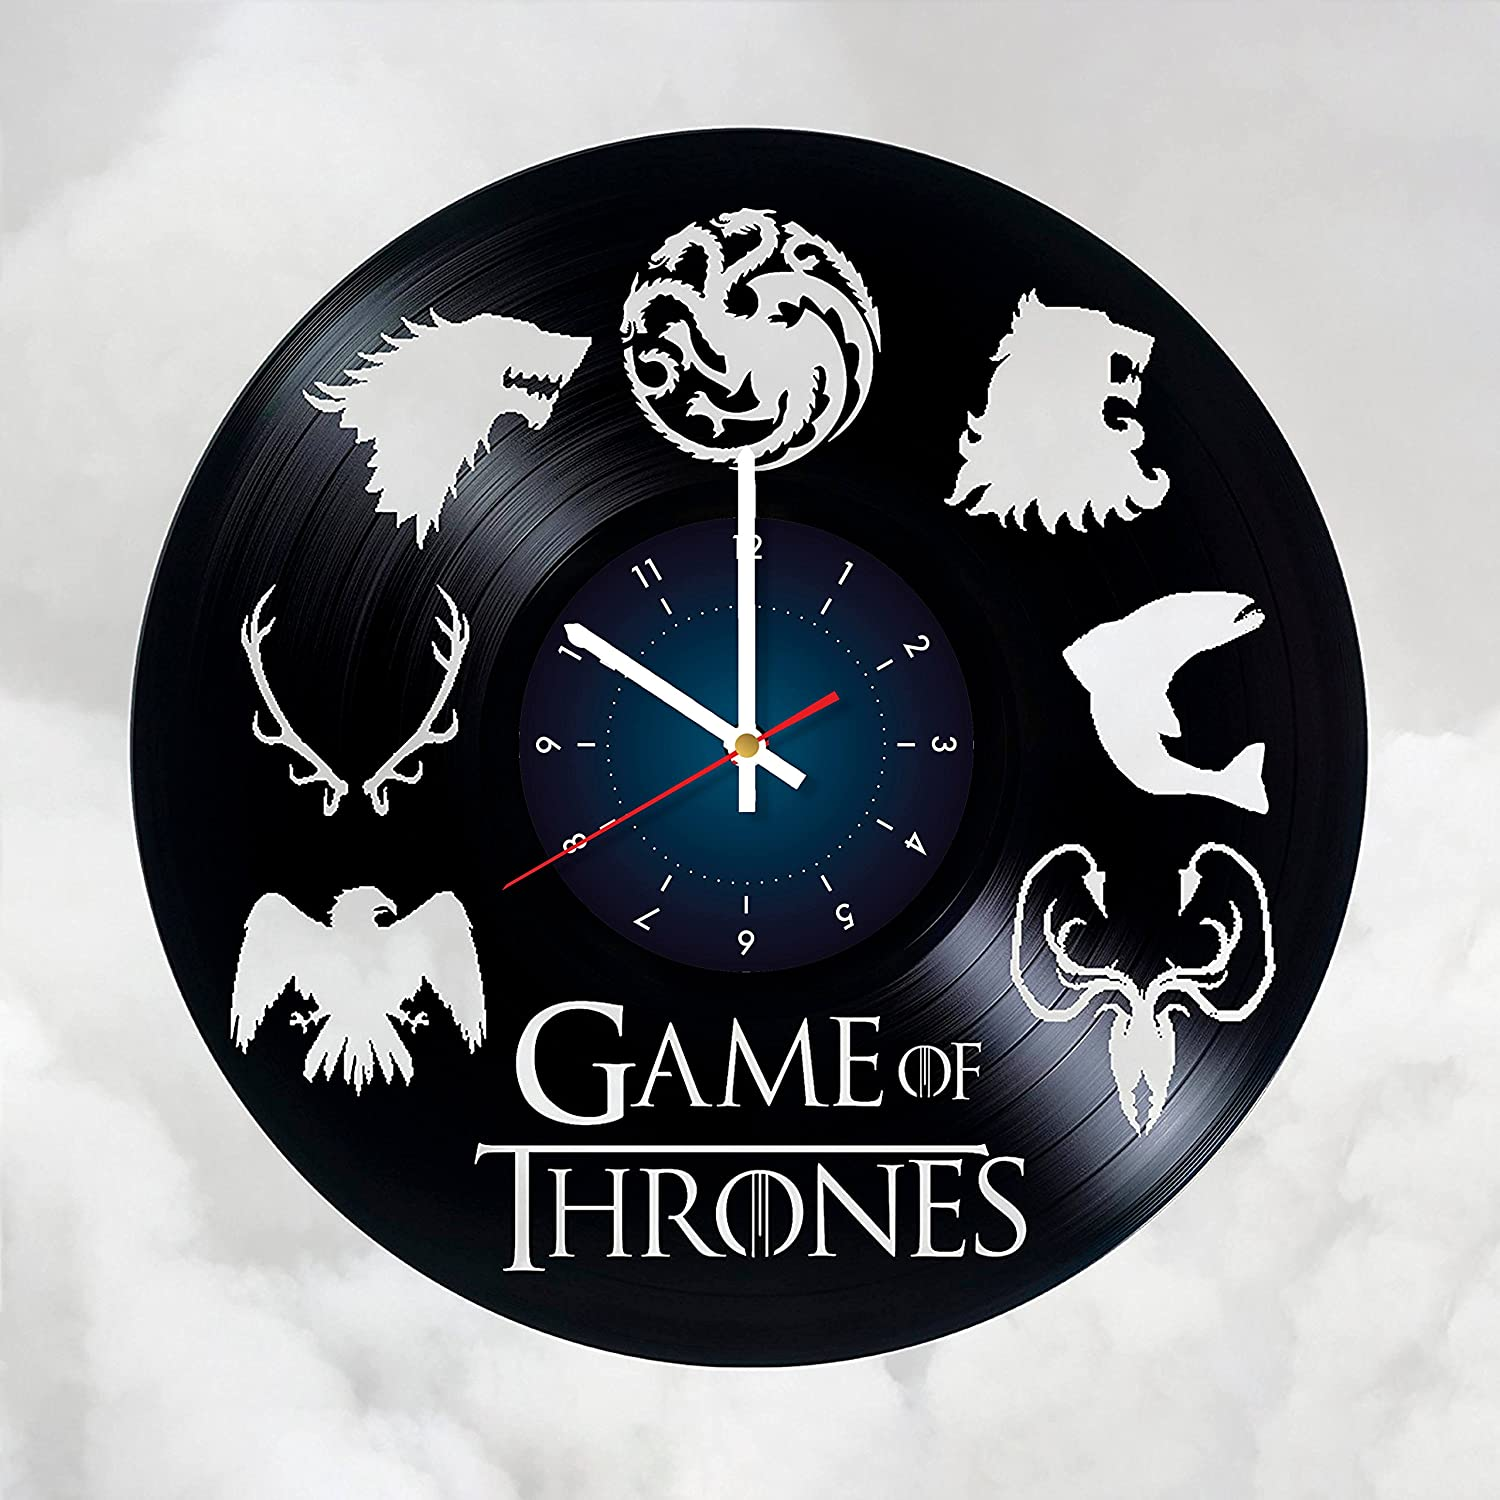 Game of Thrones - Winter is Coming - Art Vinyl Wall Clock Gift Room Modern Home Record Vintage Decoration Girt for Him and Her GOT Gift for Fan Gifts for Boys Gamers Girls Women You Prime Gift